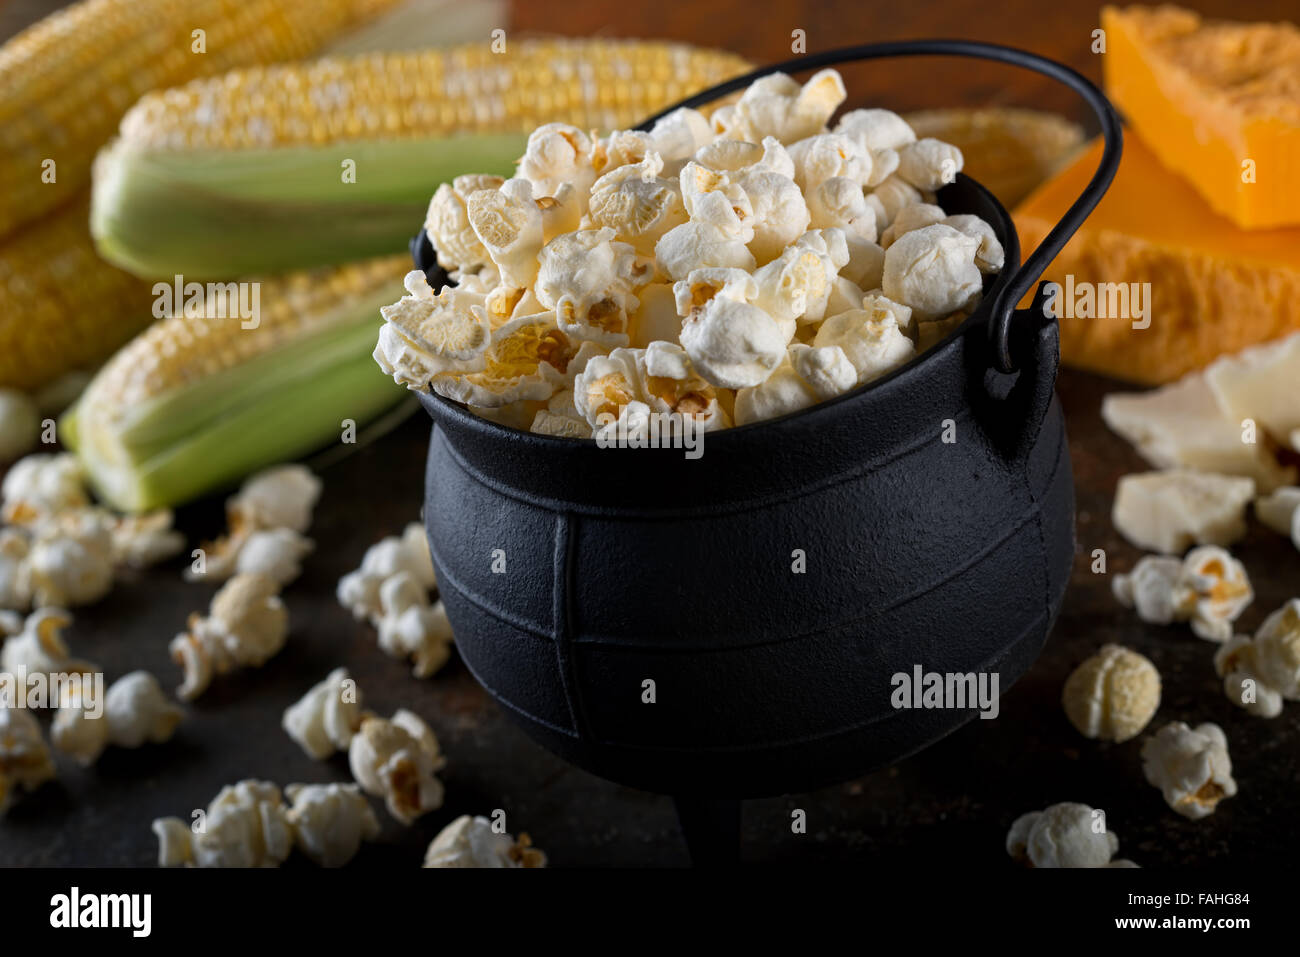 Delicious home made white cheddar flavor kettle corn popcorn. - Stock Image